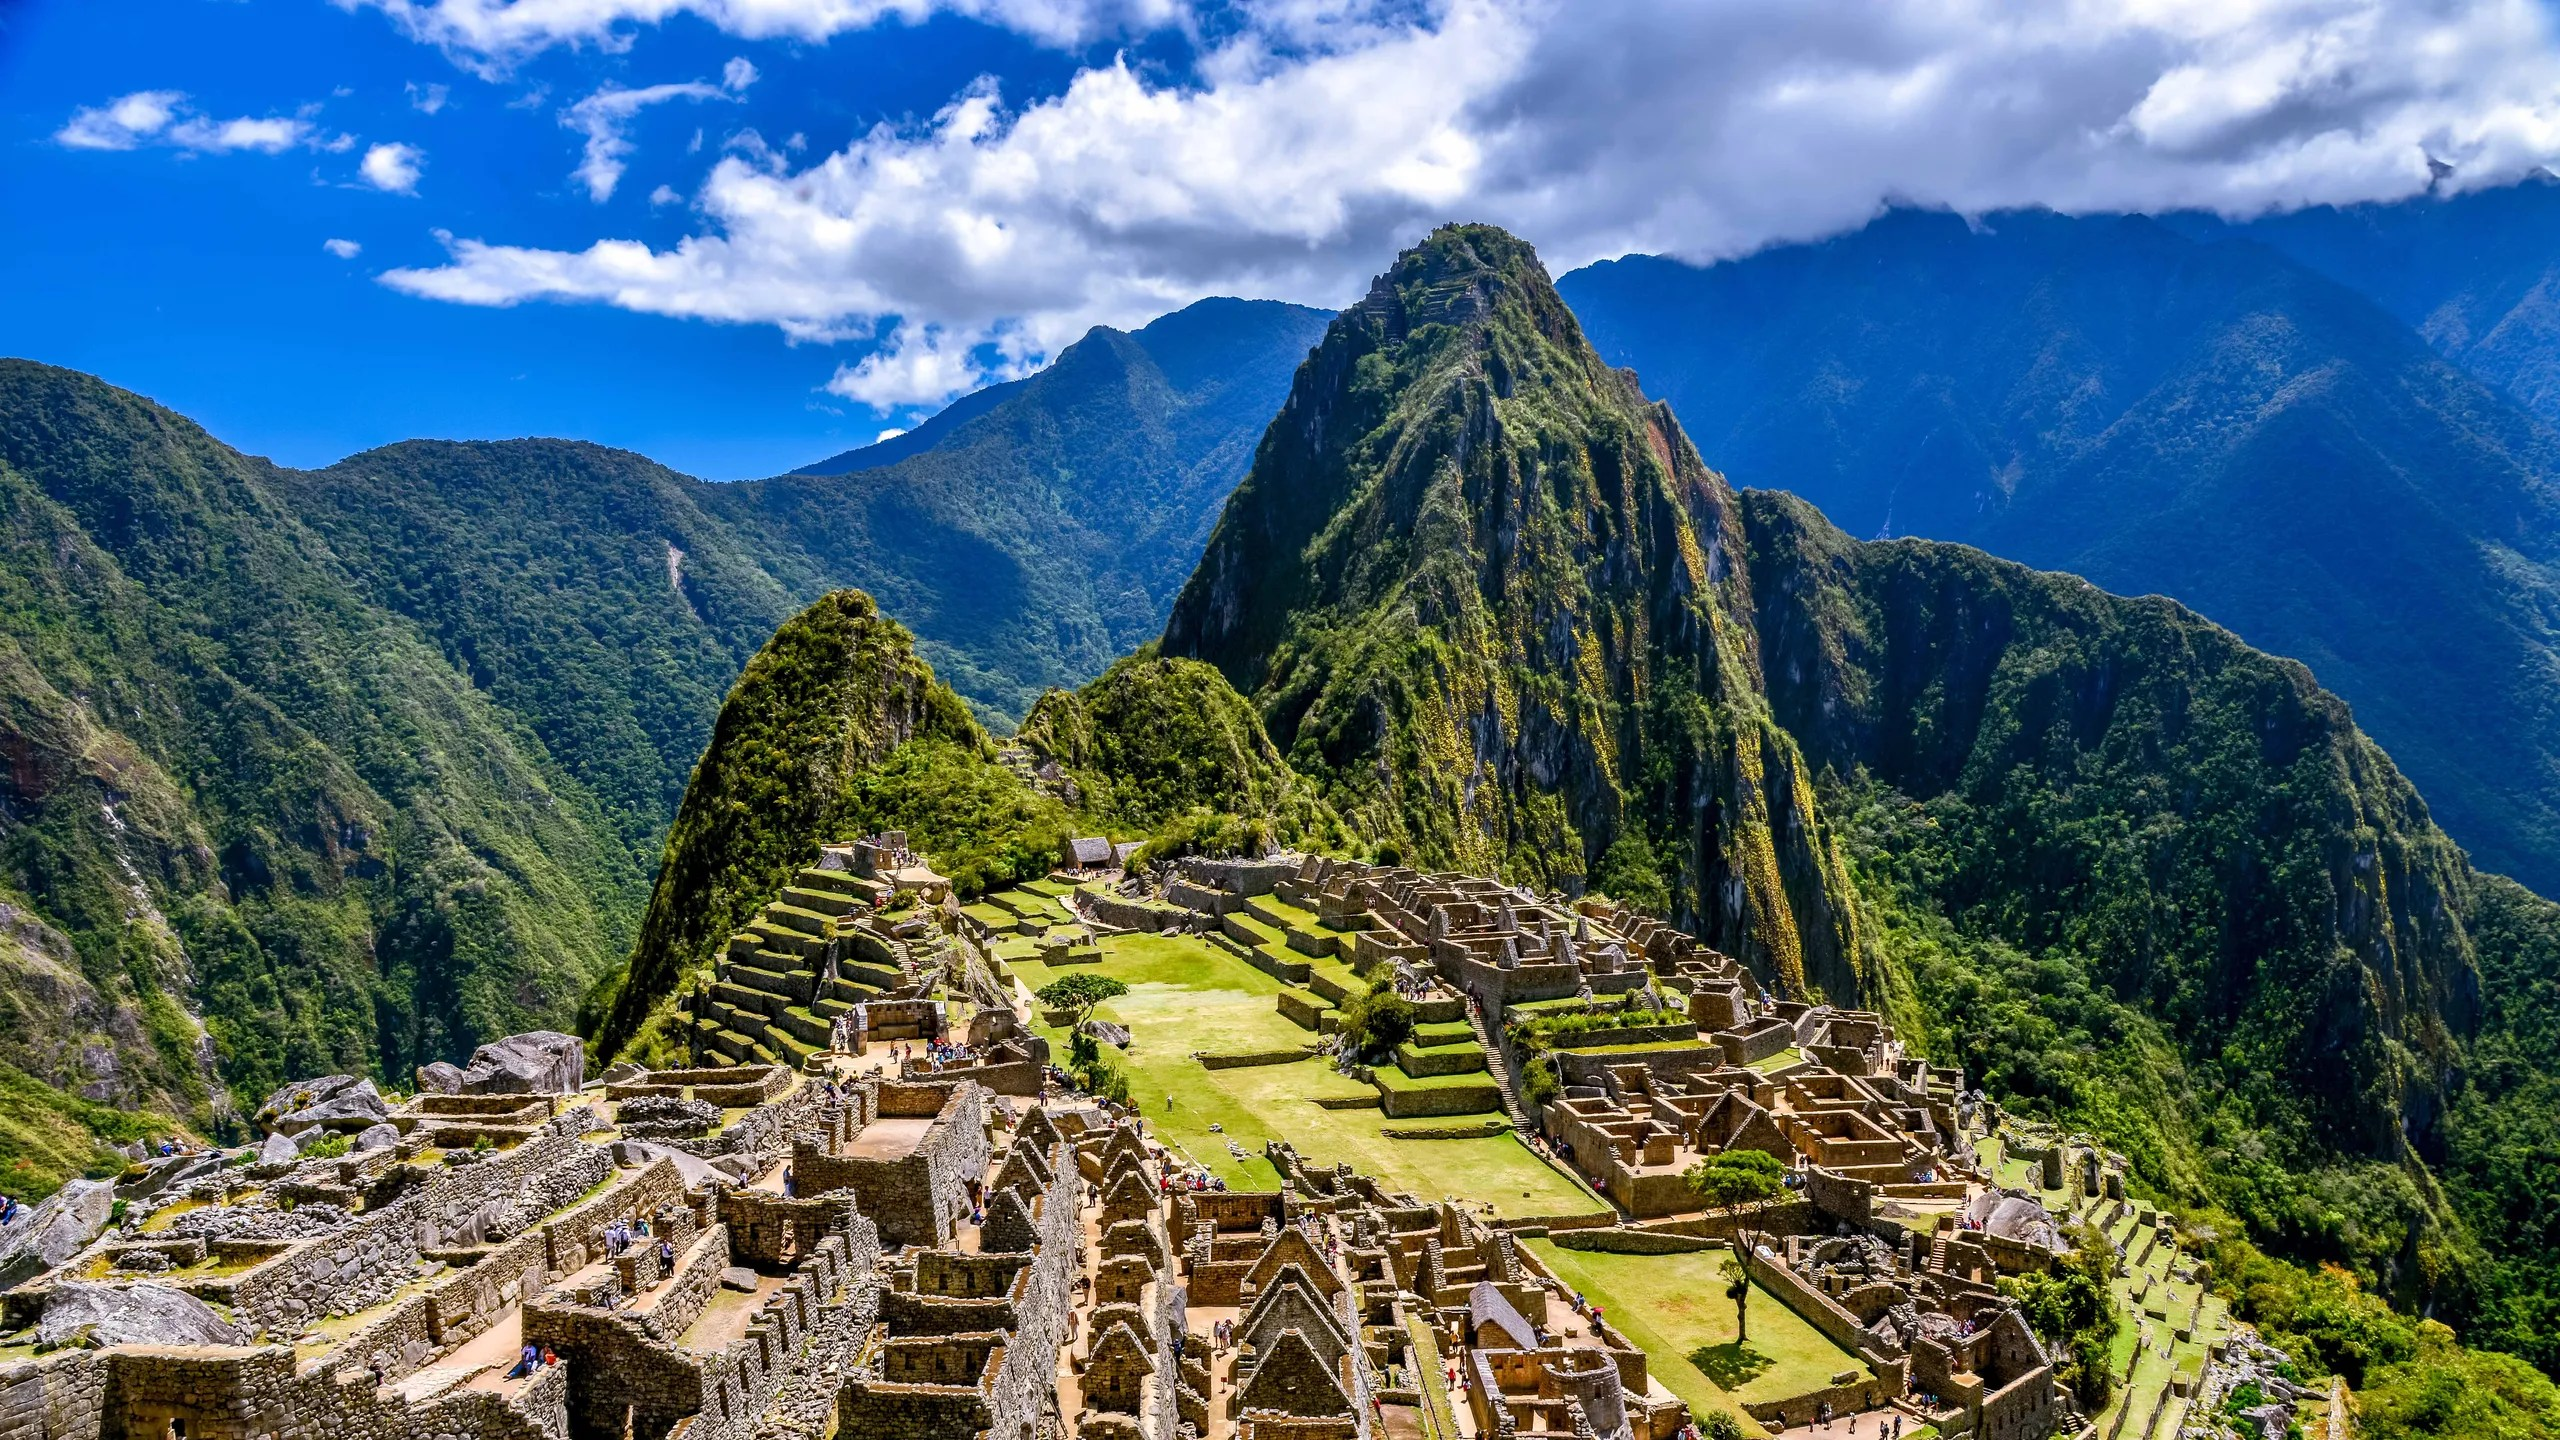 Does Machu Picchu Really Need An Airport